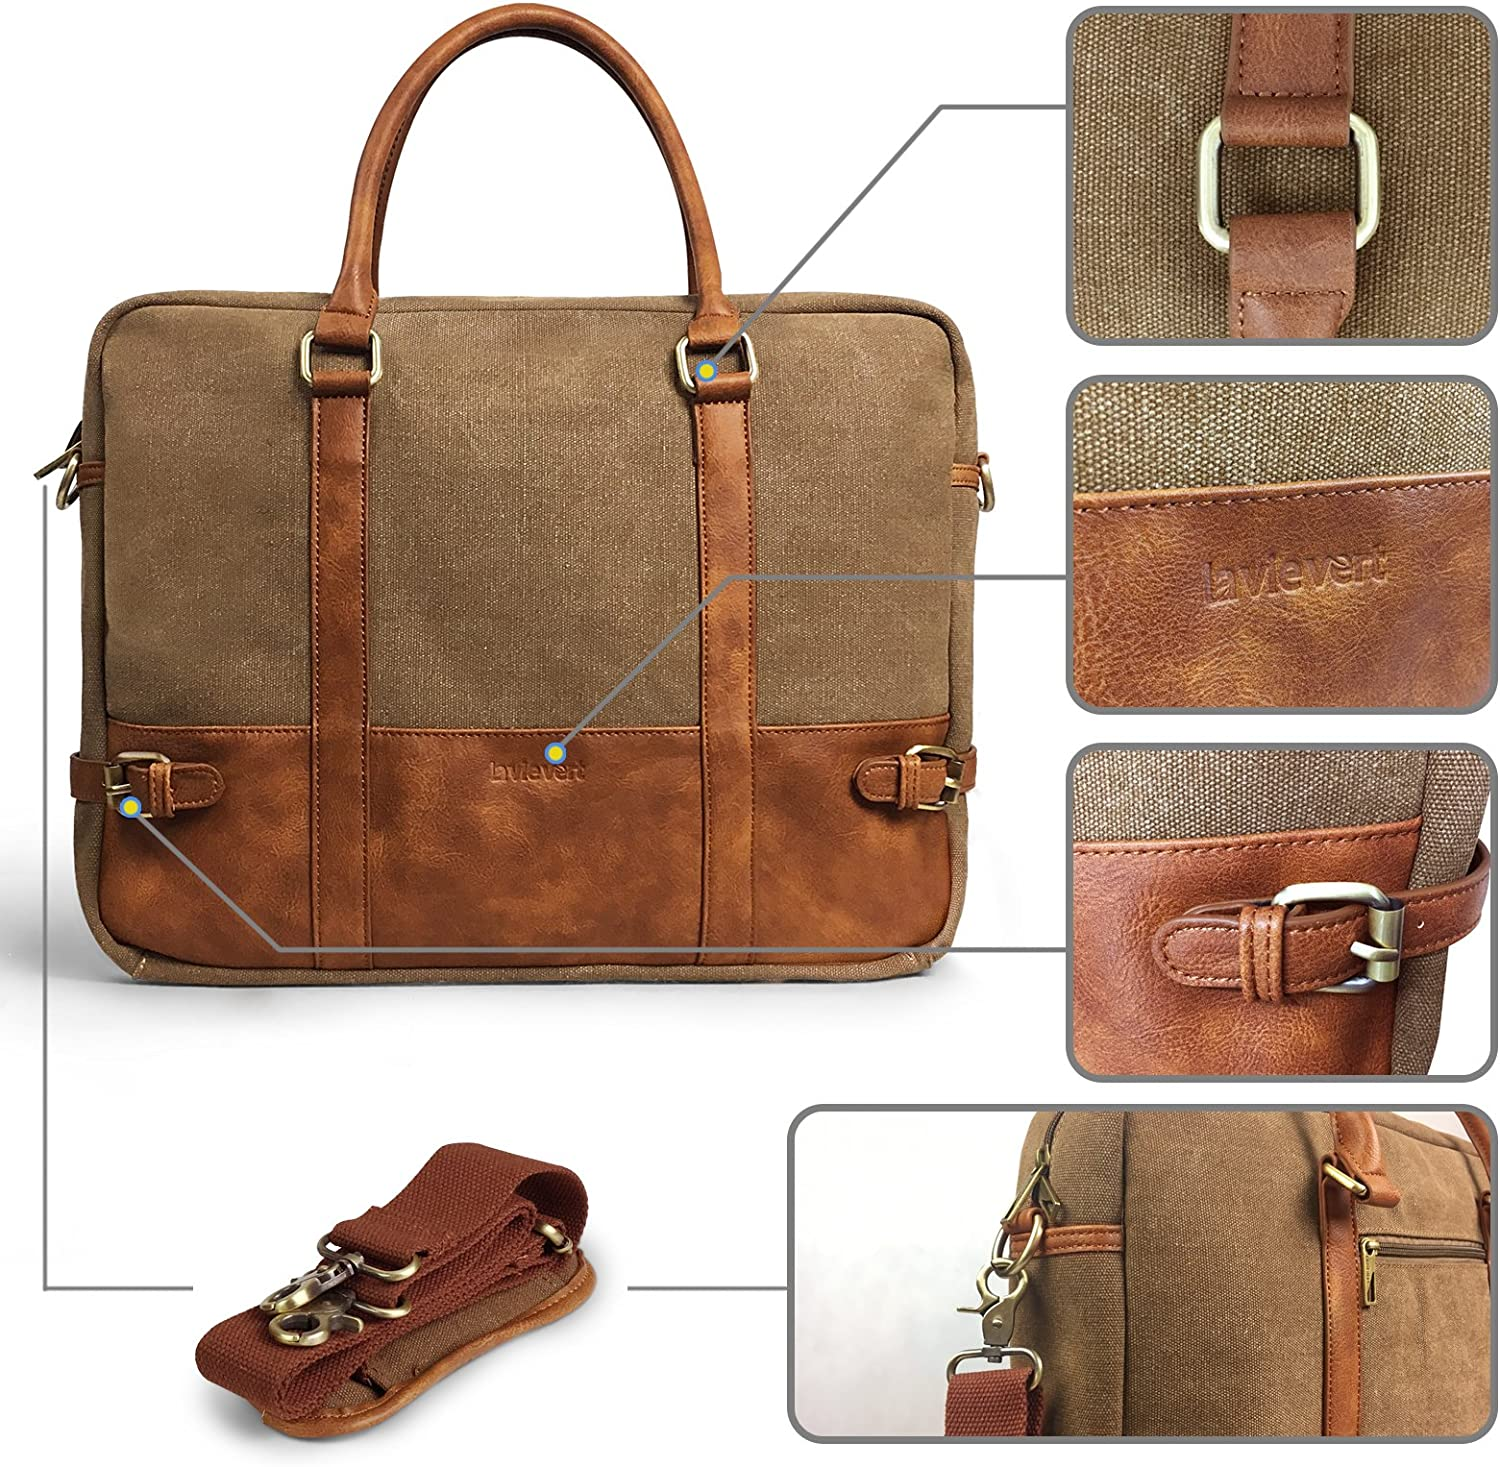 Brown Lavievert Cotton Canvas and Crazy-horse PU Leather Laptop Bag//Cross Body Shoulder Bag and Handbag 2 in 1 Notebook Ultrabook Tablet Padded Case for Up to 15.6 Inch Laptop